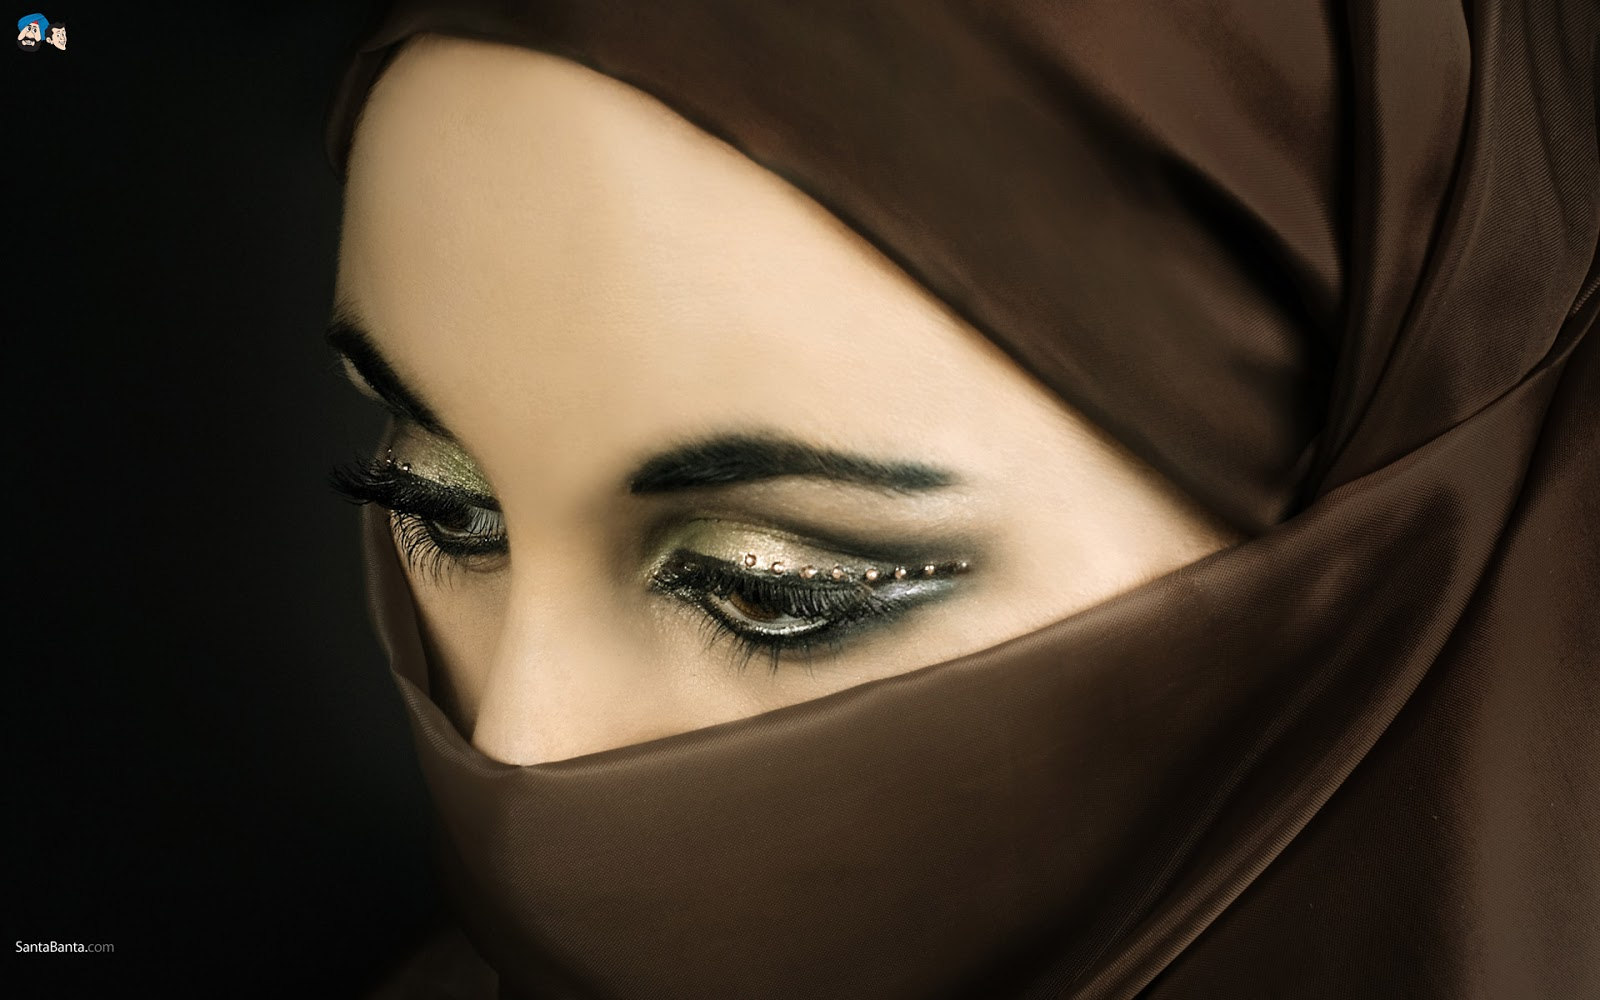 wallpaper hijab wallpapers south - photo #43